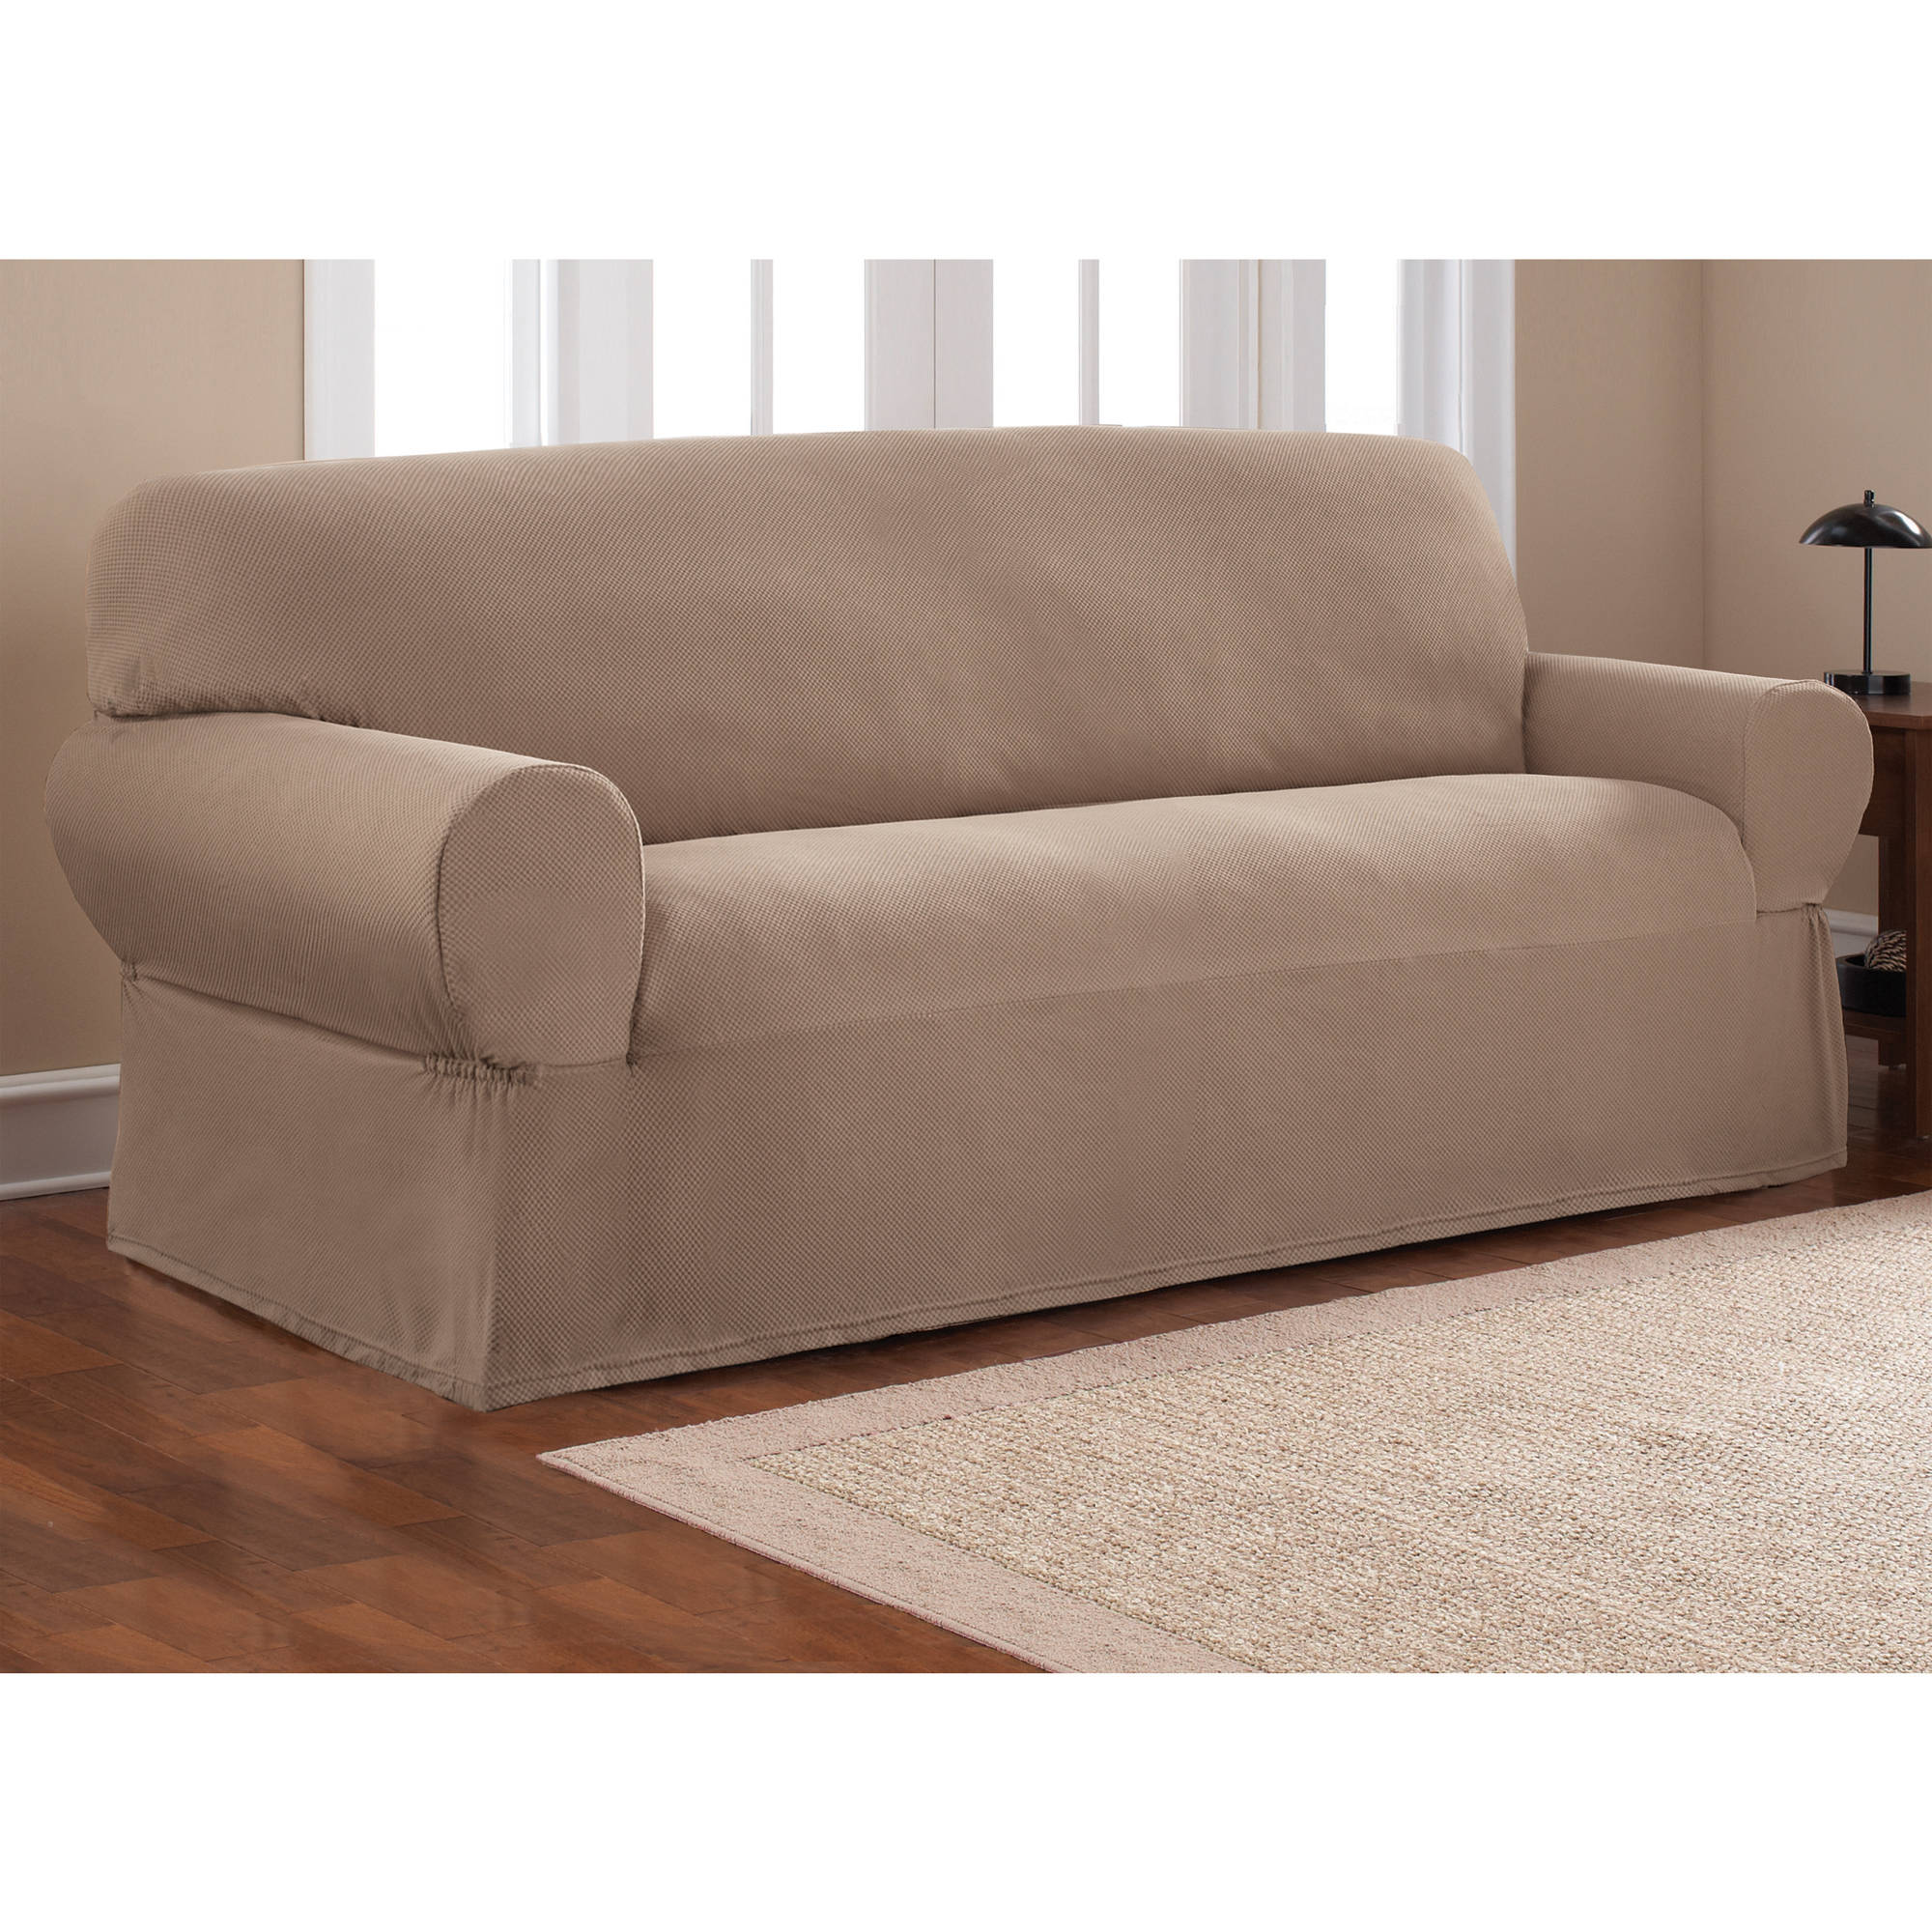 Attrayant Mainstays Stretch Pixel 1 Piece Sofa Furniture Cover Slipcover   Walmart.com